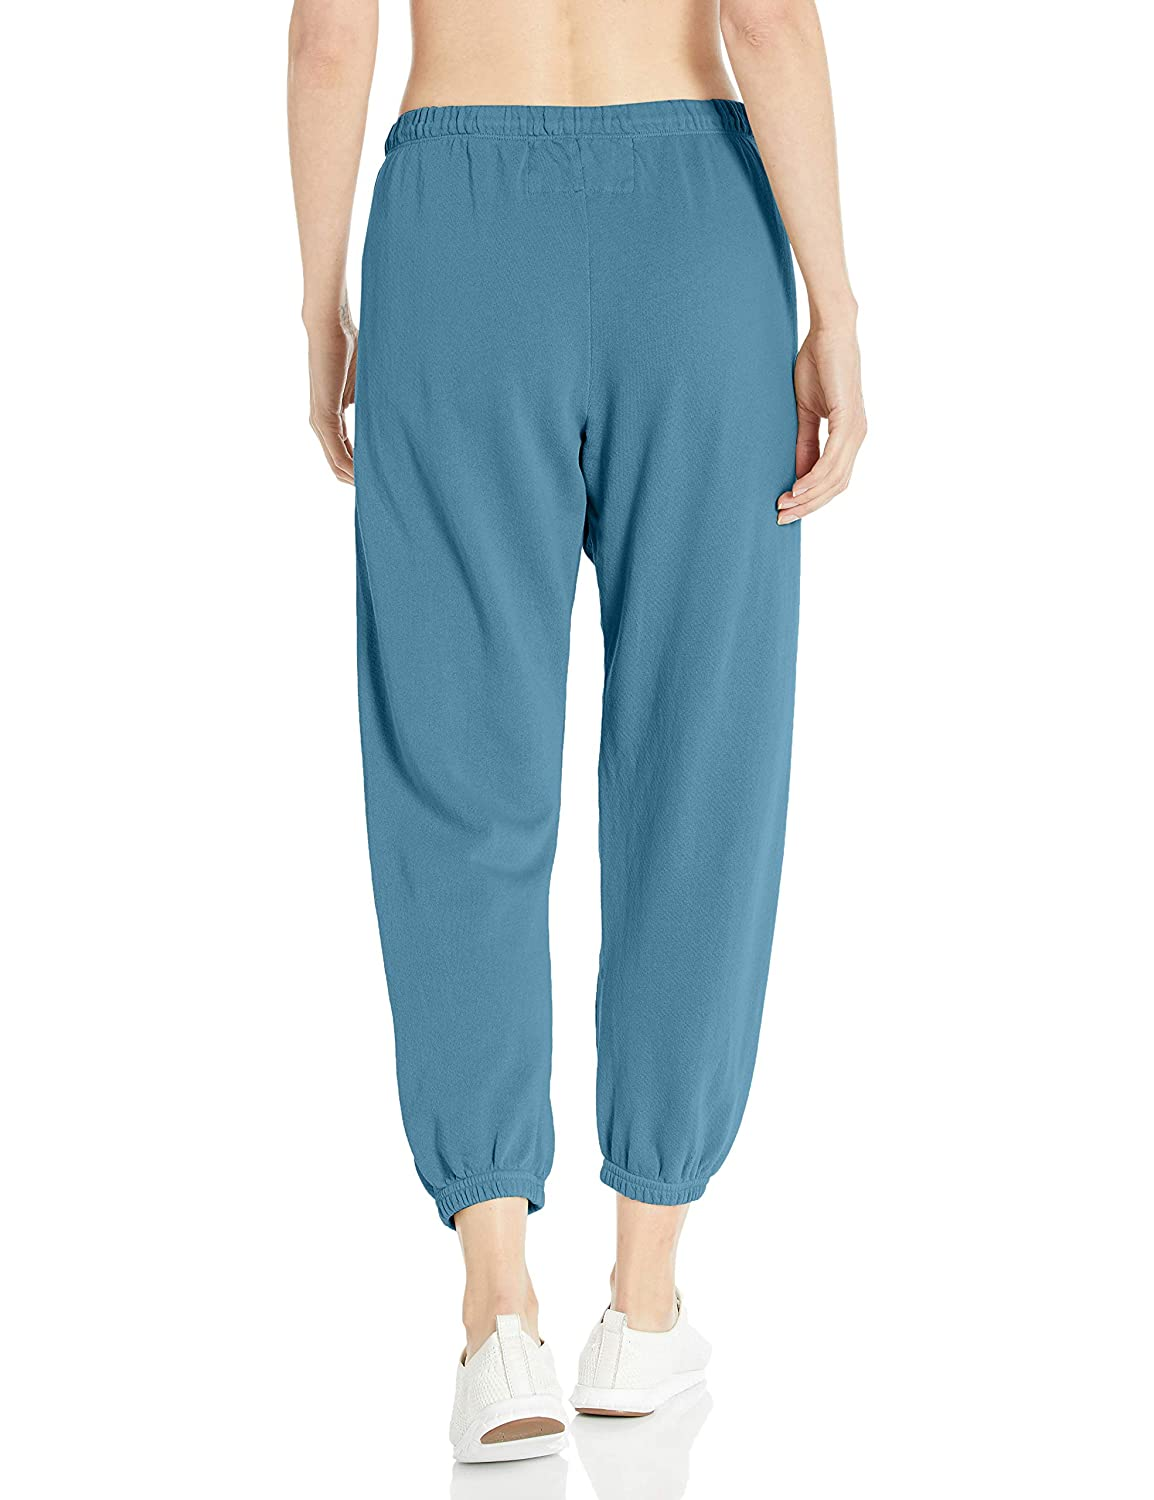 FREECITY Womens Large Sweatpant